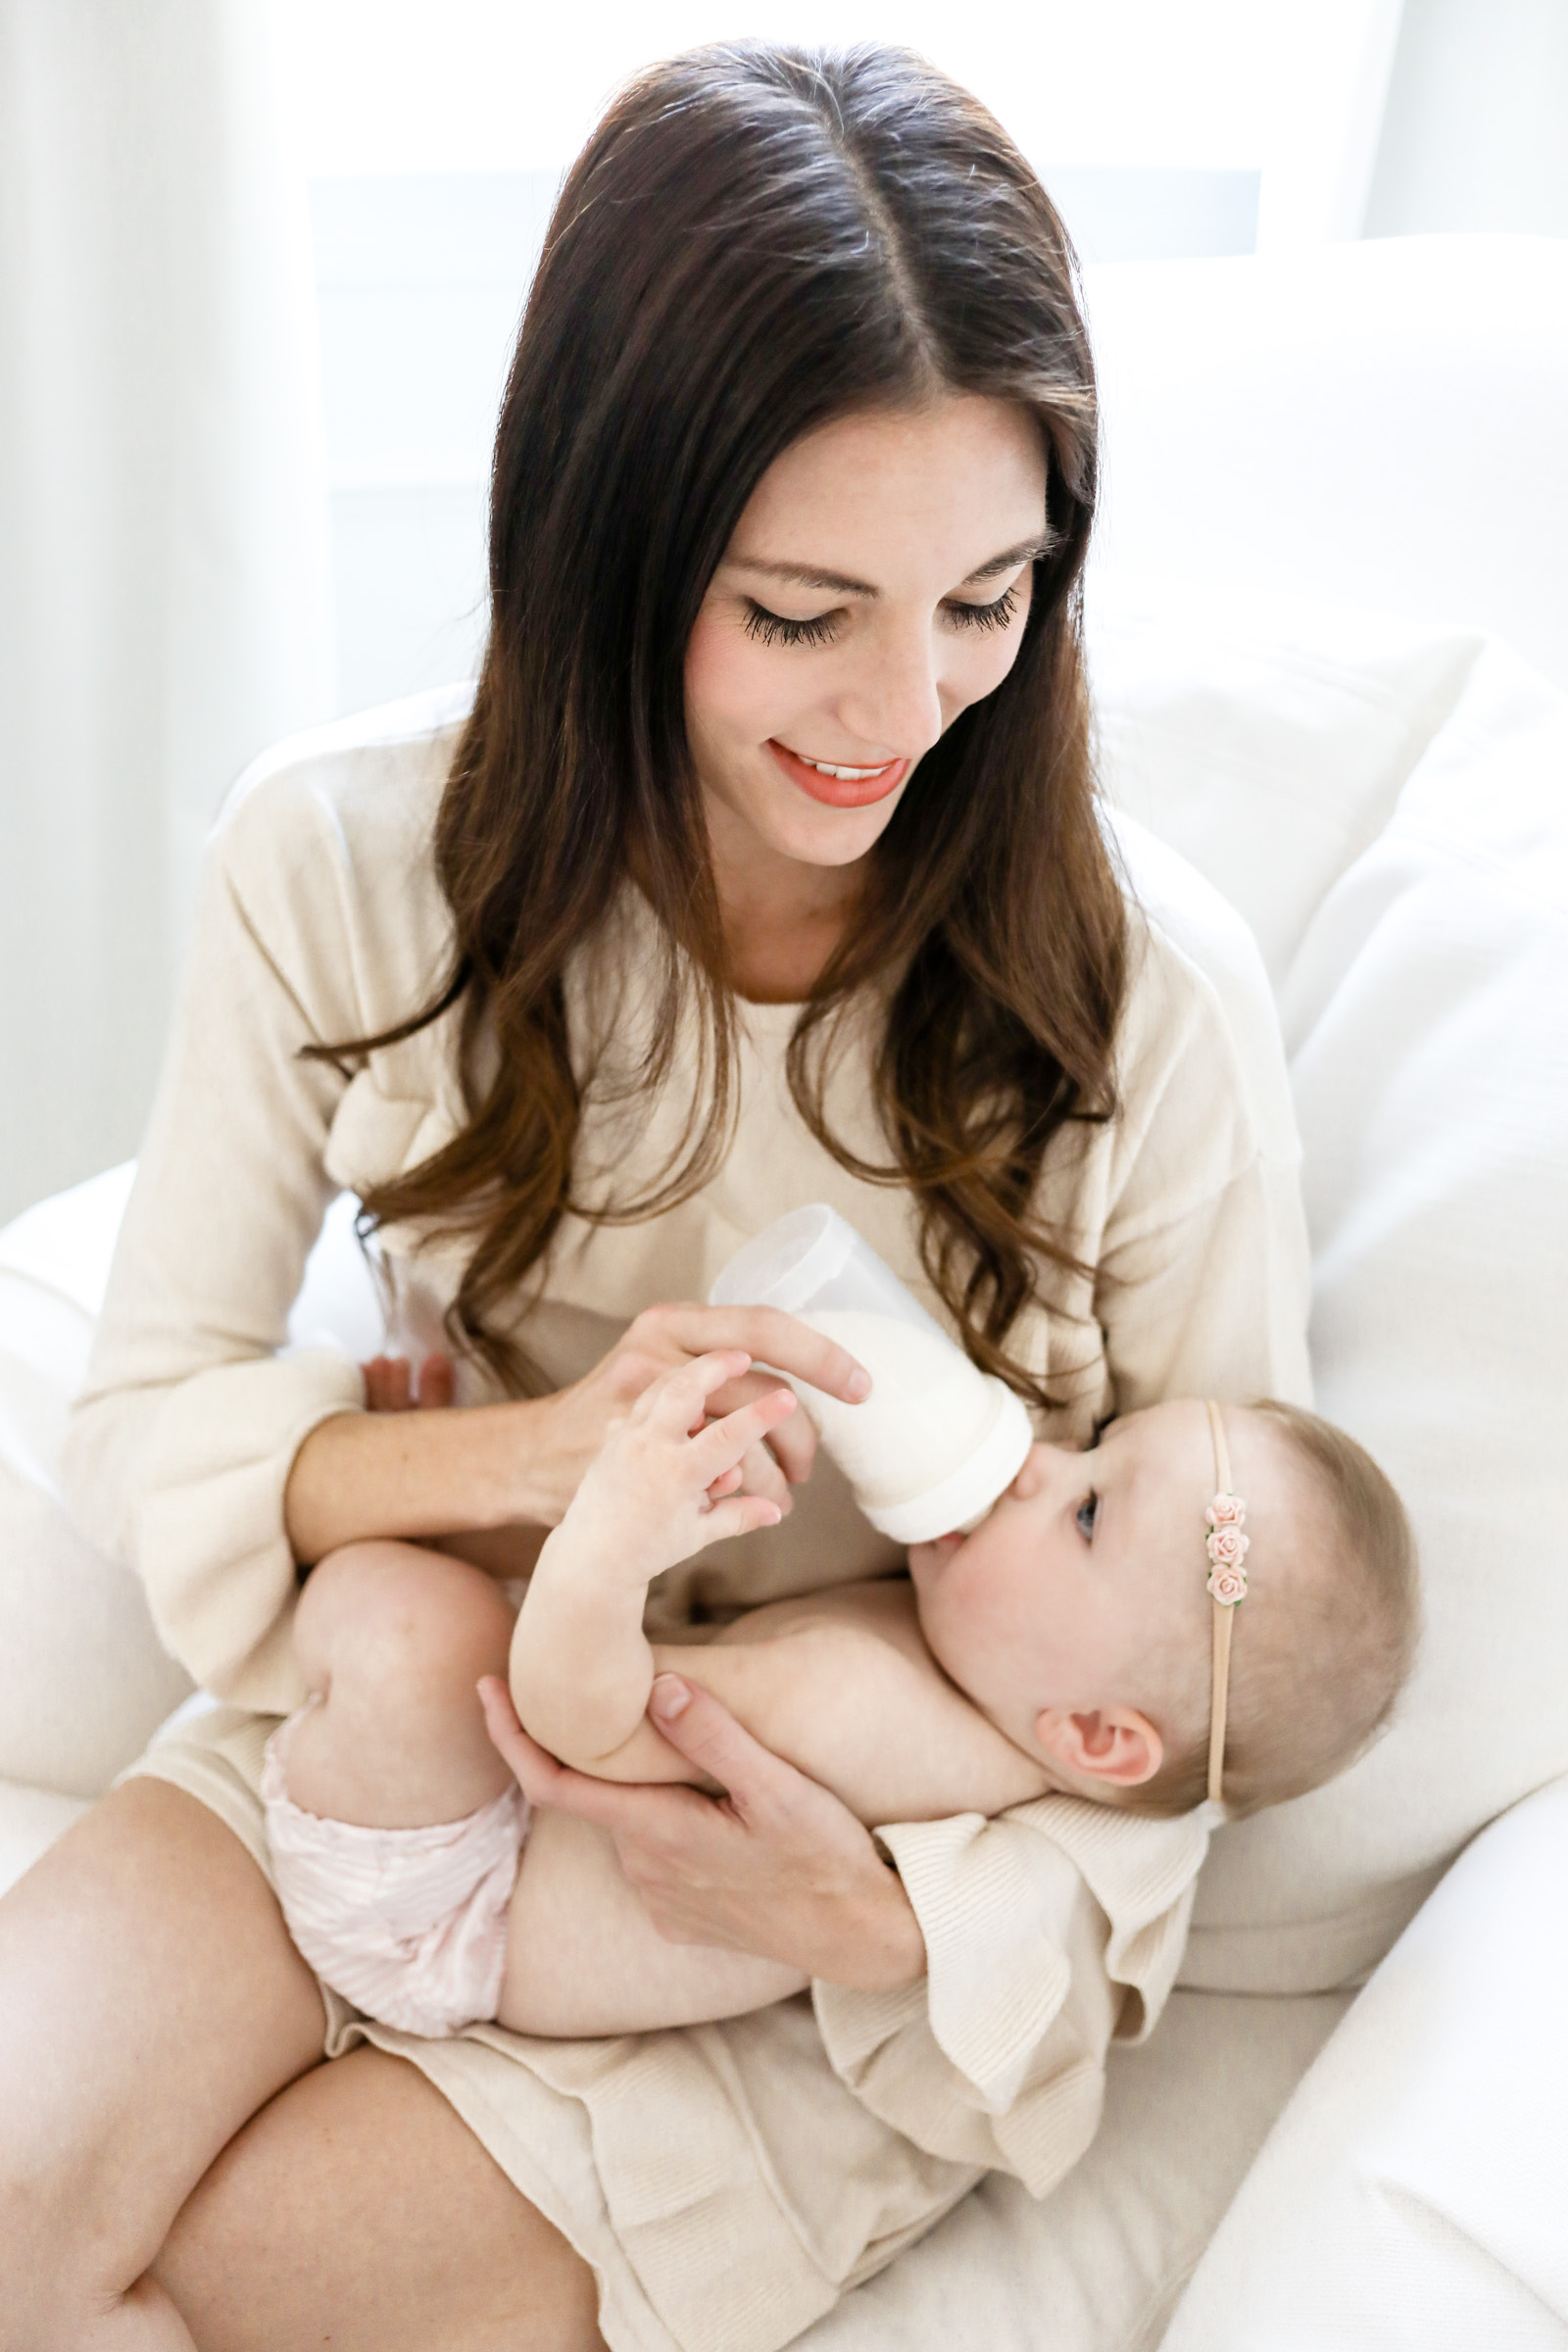 breast feeding versus bottle feeding Breastfeeding vs formula feeding in this article in this article  a big decision new moms must make for their little one's nutrition is breast vs formula  if you pull out a bottle of.